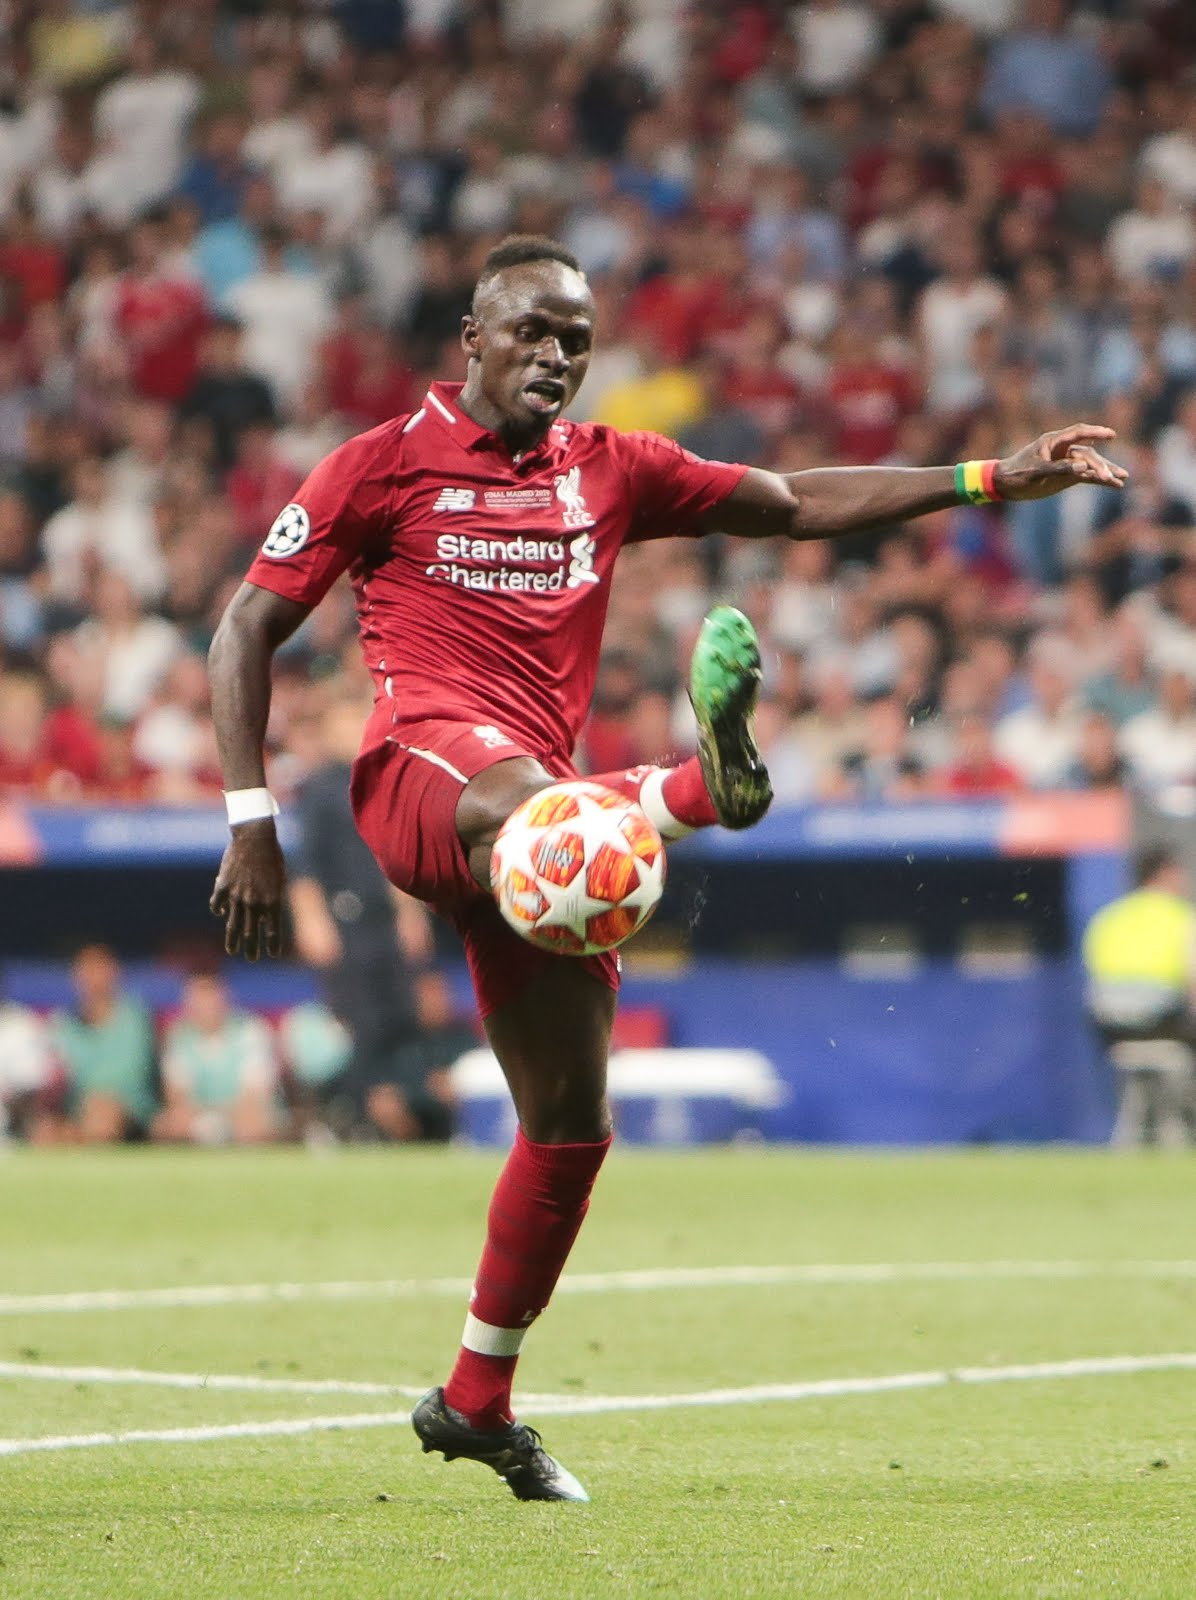 Sadio Mane with the ball for Liverpool